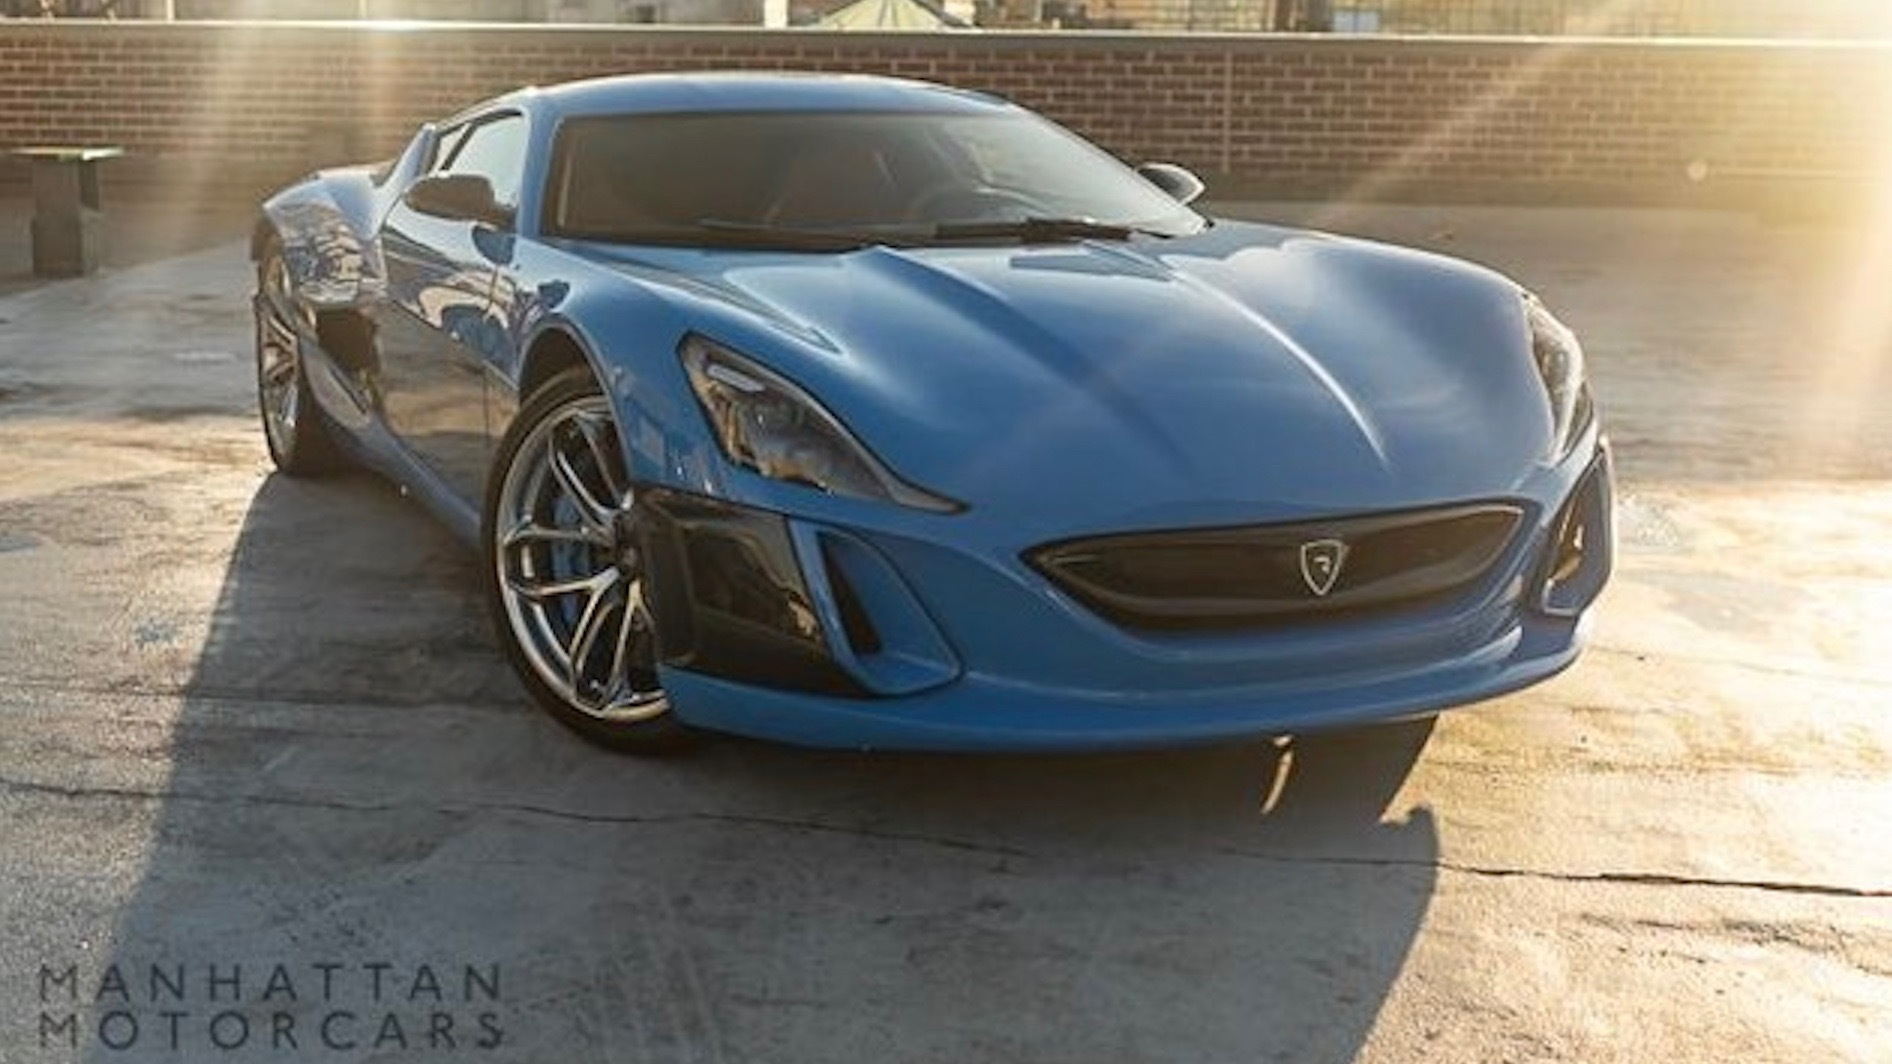 Rimac Concept_One for sale (Photo by Manhattan Motorcars)